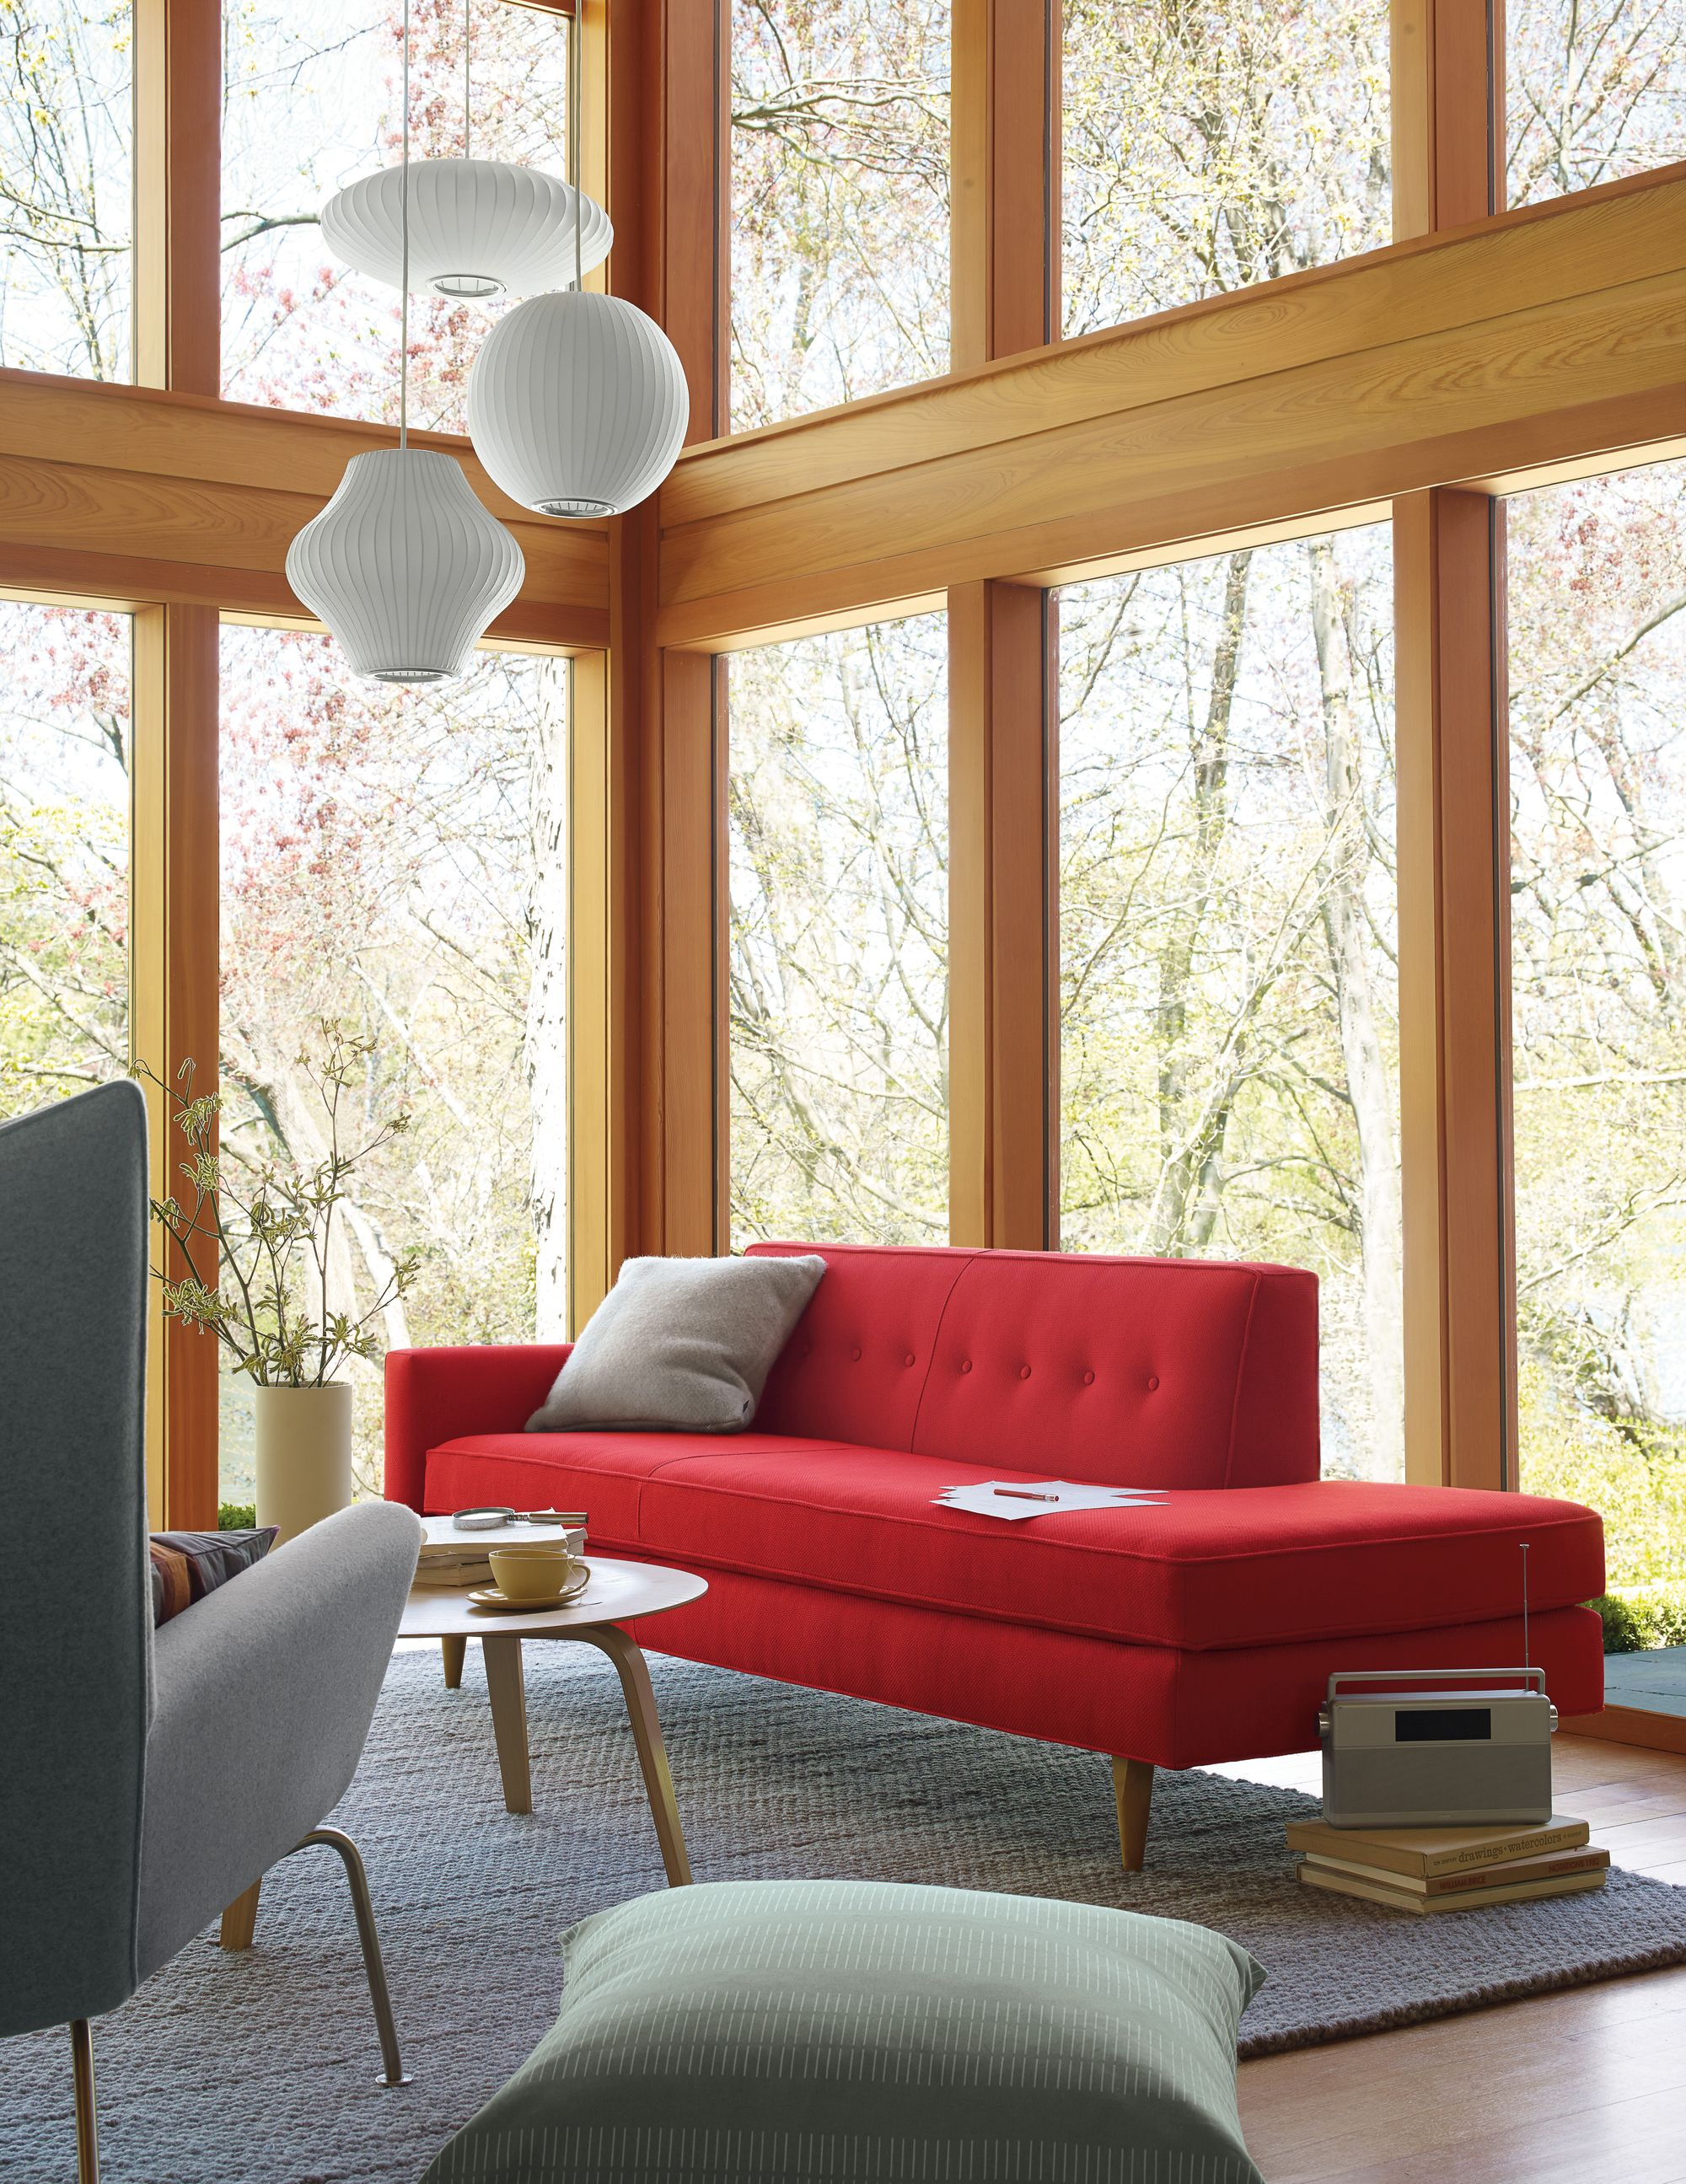 e of our favorites is also one of yours Bantam Sofa Collection